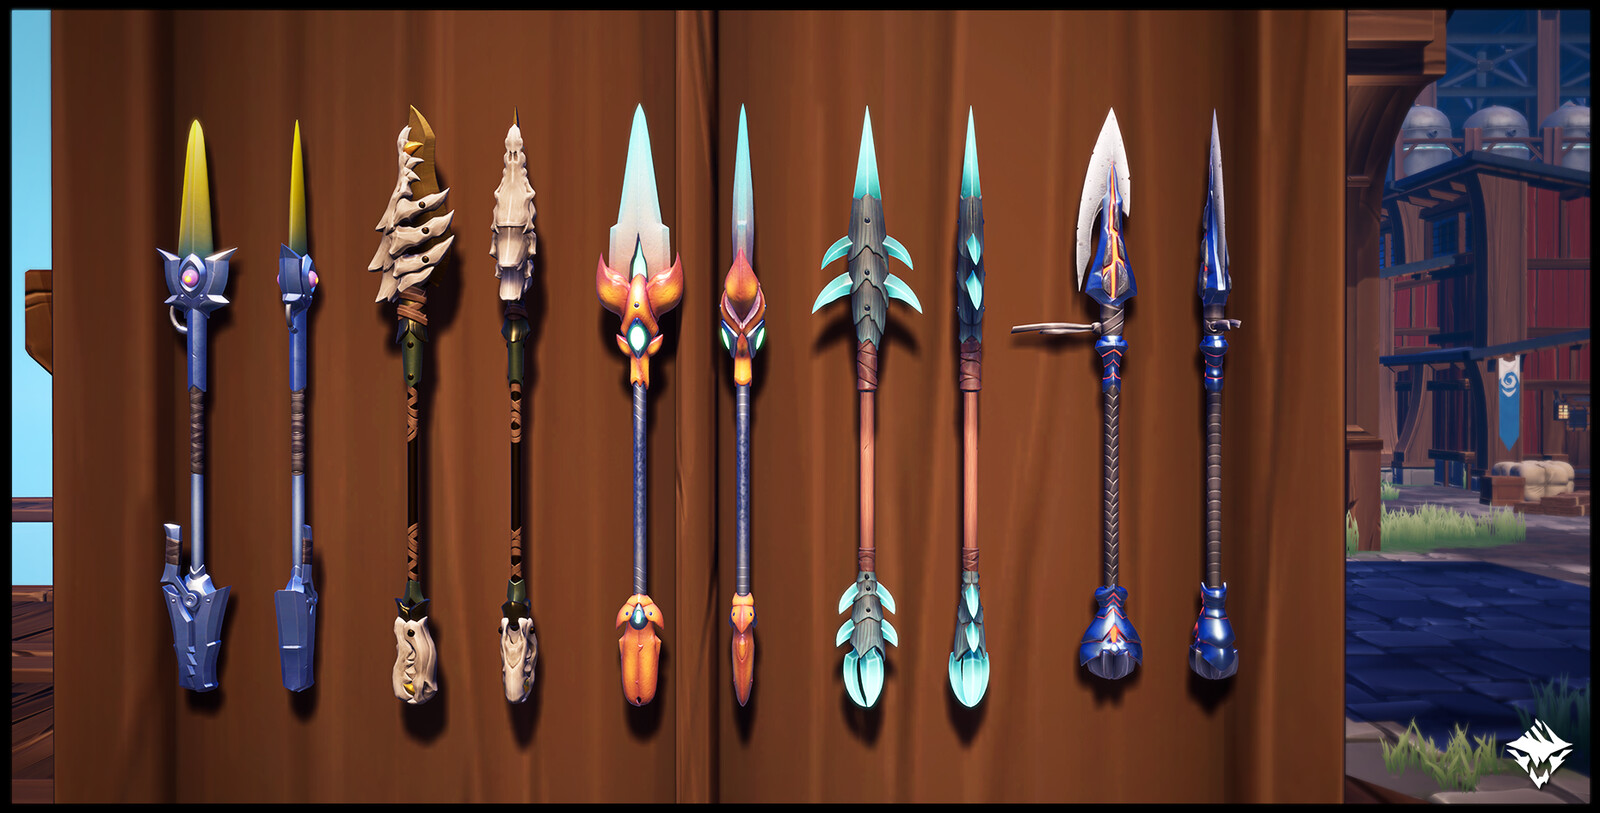 Nayzaga's Fang (Craftable), The Barracuda (MTX), Kharabak's Sting (Craftable), Quillshot's Javelin (Craftable), Charred Spear (Craftable)